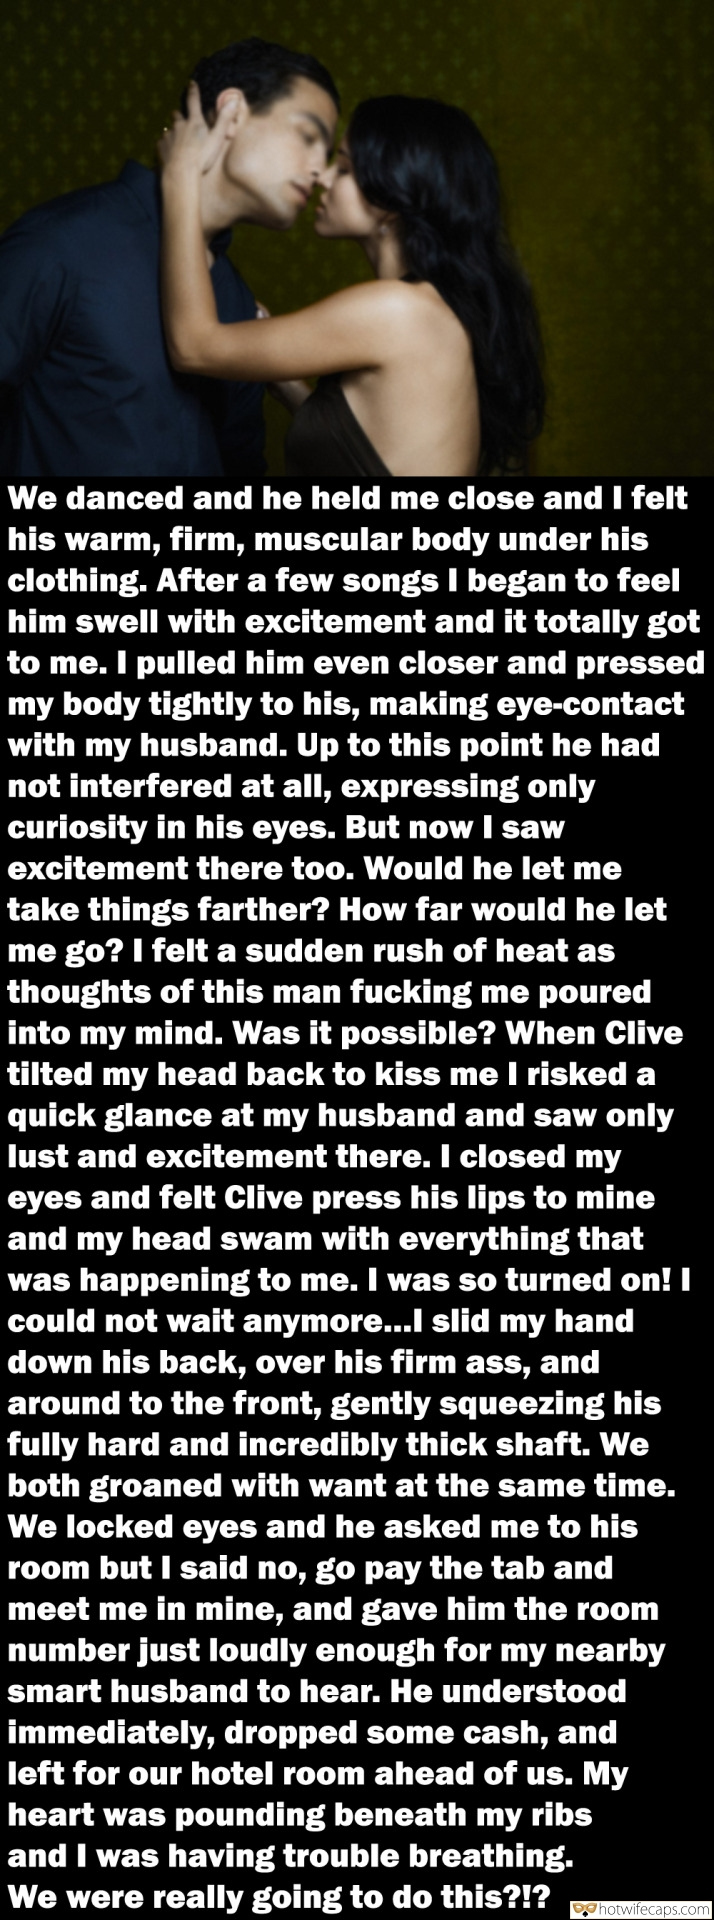 SFW Caps Dirty Talk  hotwife caption: We danced and he held me close and I felt his warm, firm, muscular body under his clothing. After a few songs I began to feel him swell with excitement and it totally got to me. I pulled him even...